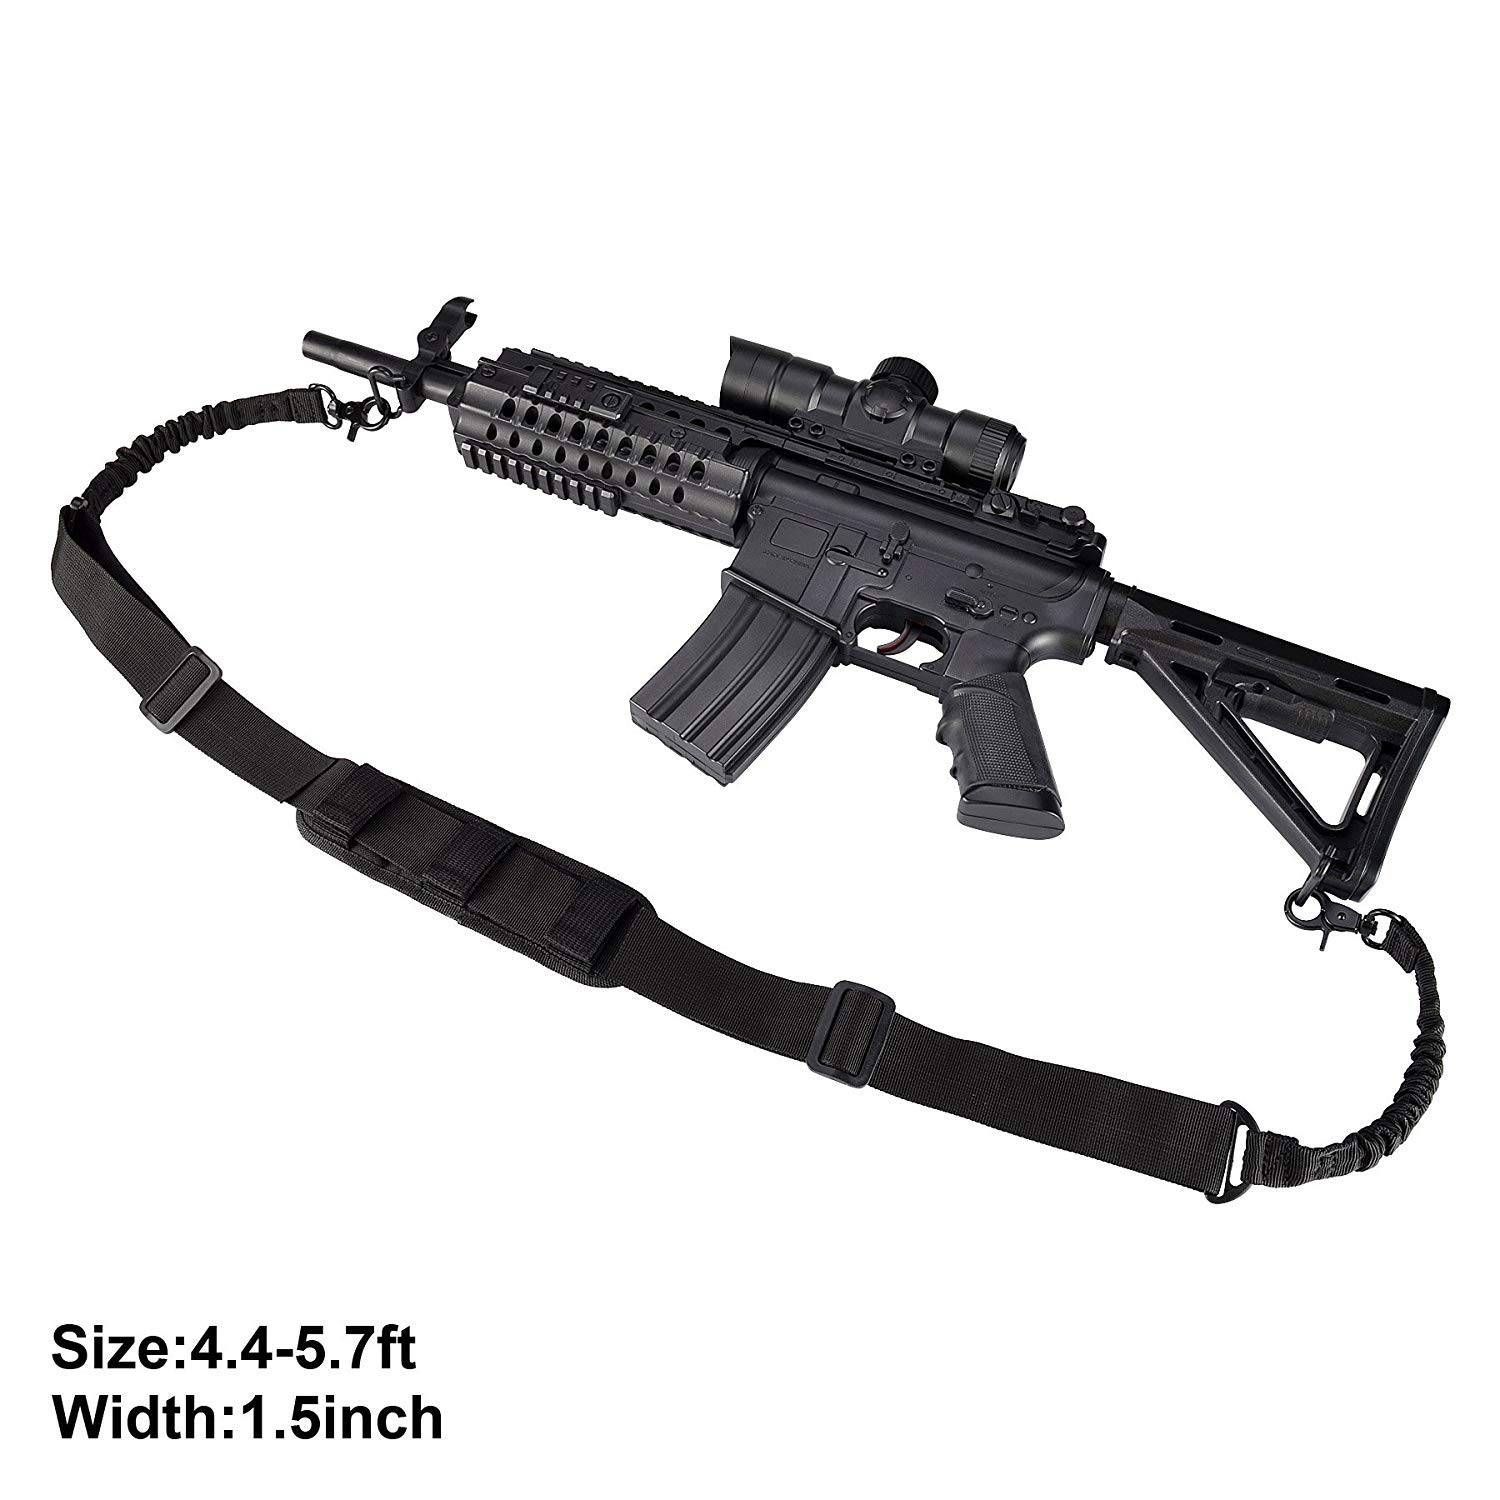 BOOSTEADY 2 Point Rifle Sling Shoulder Strap Trigger Snap with QD Swivel Mount Adjustable